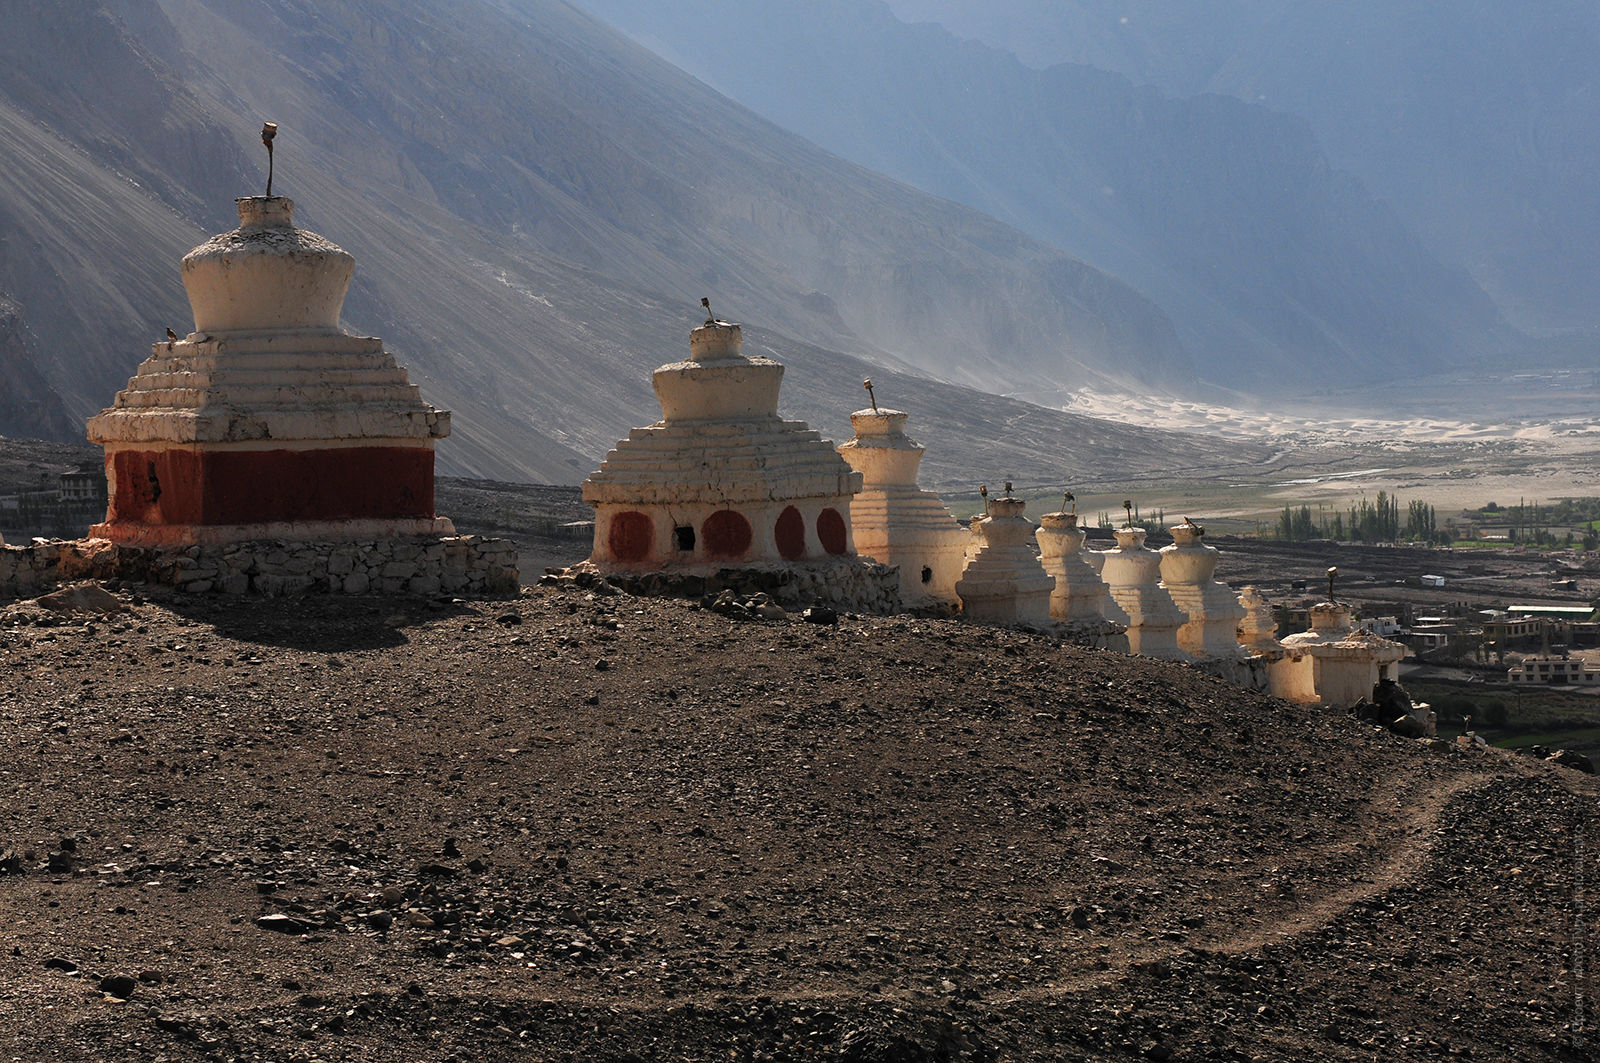 The ancient Buddhist stupa near the monastery disk Gompa, Nubra, Ladakh. Photo tour in Nubra valley, October 2017.